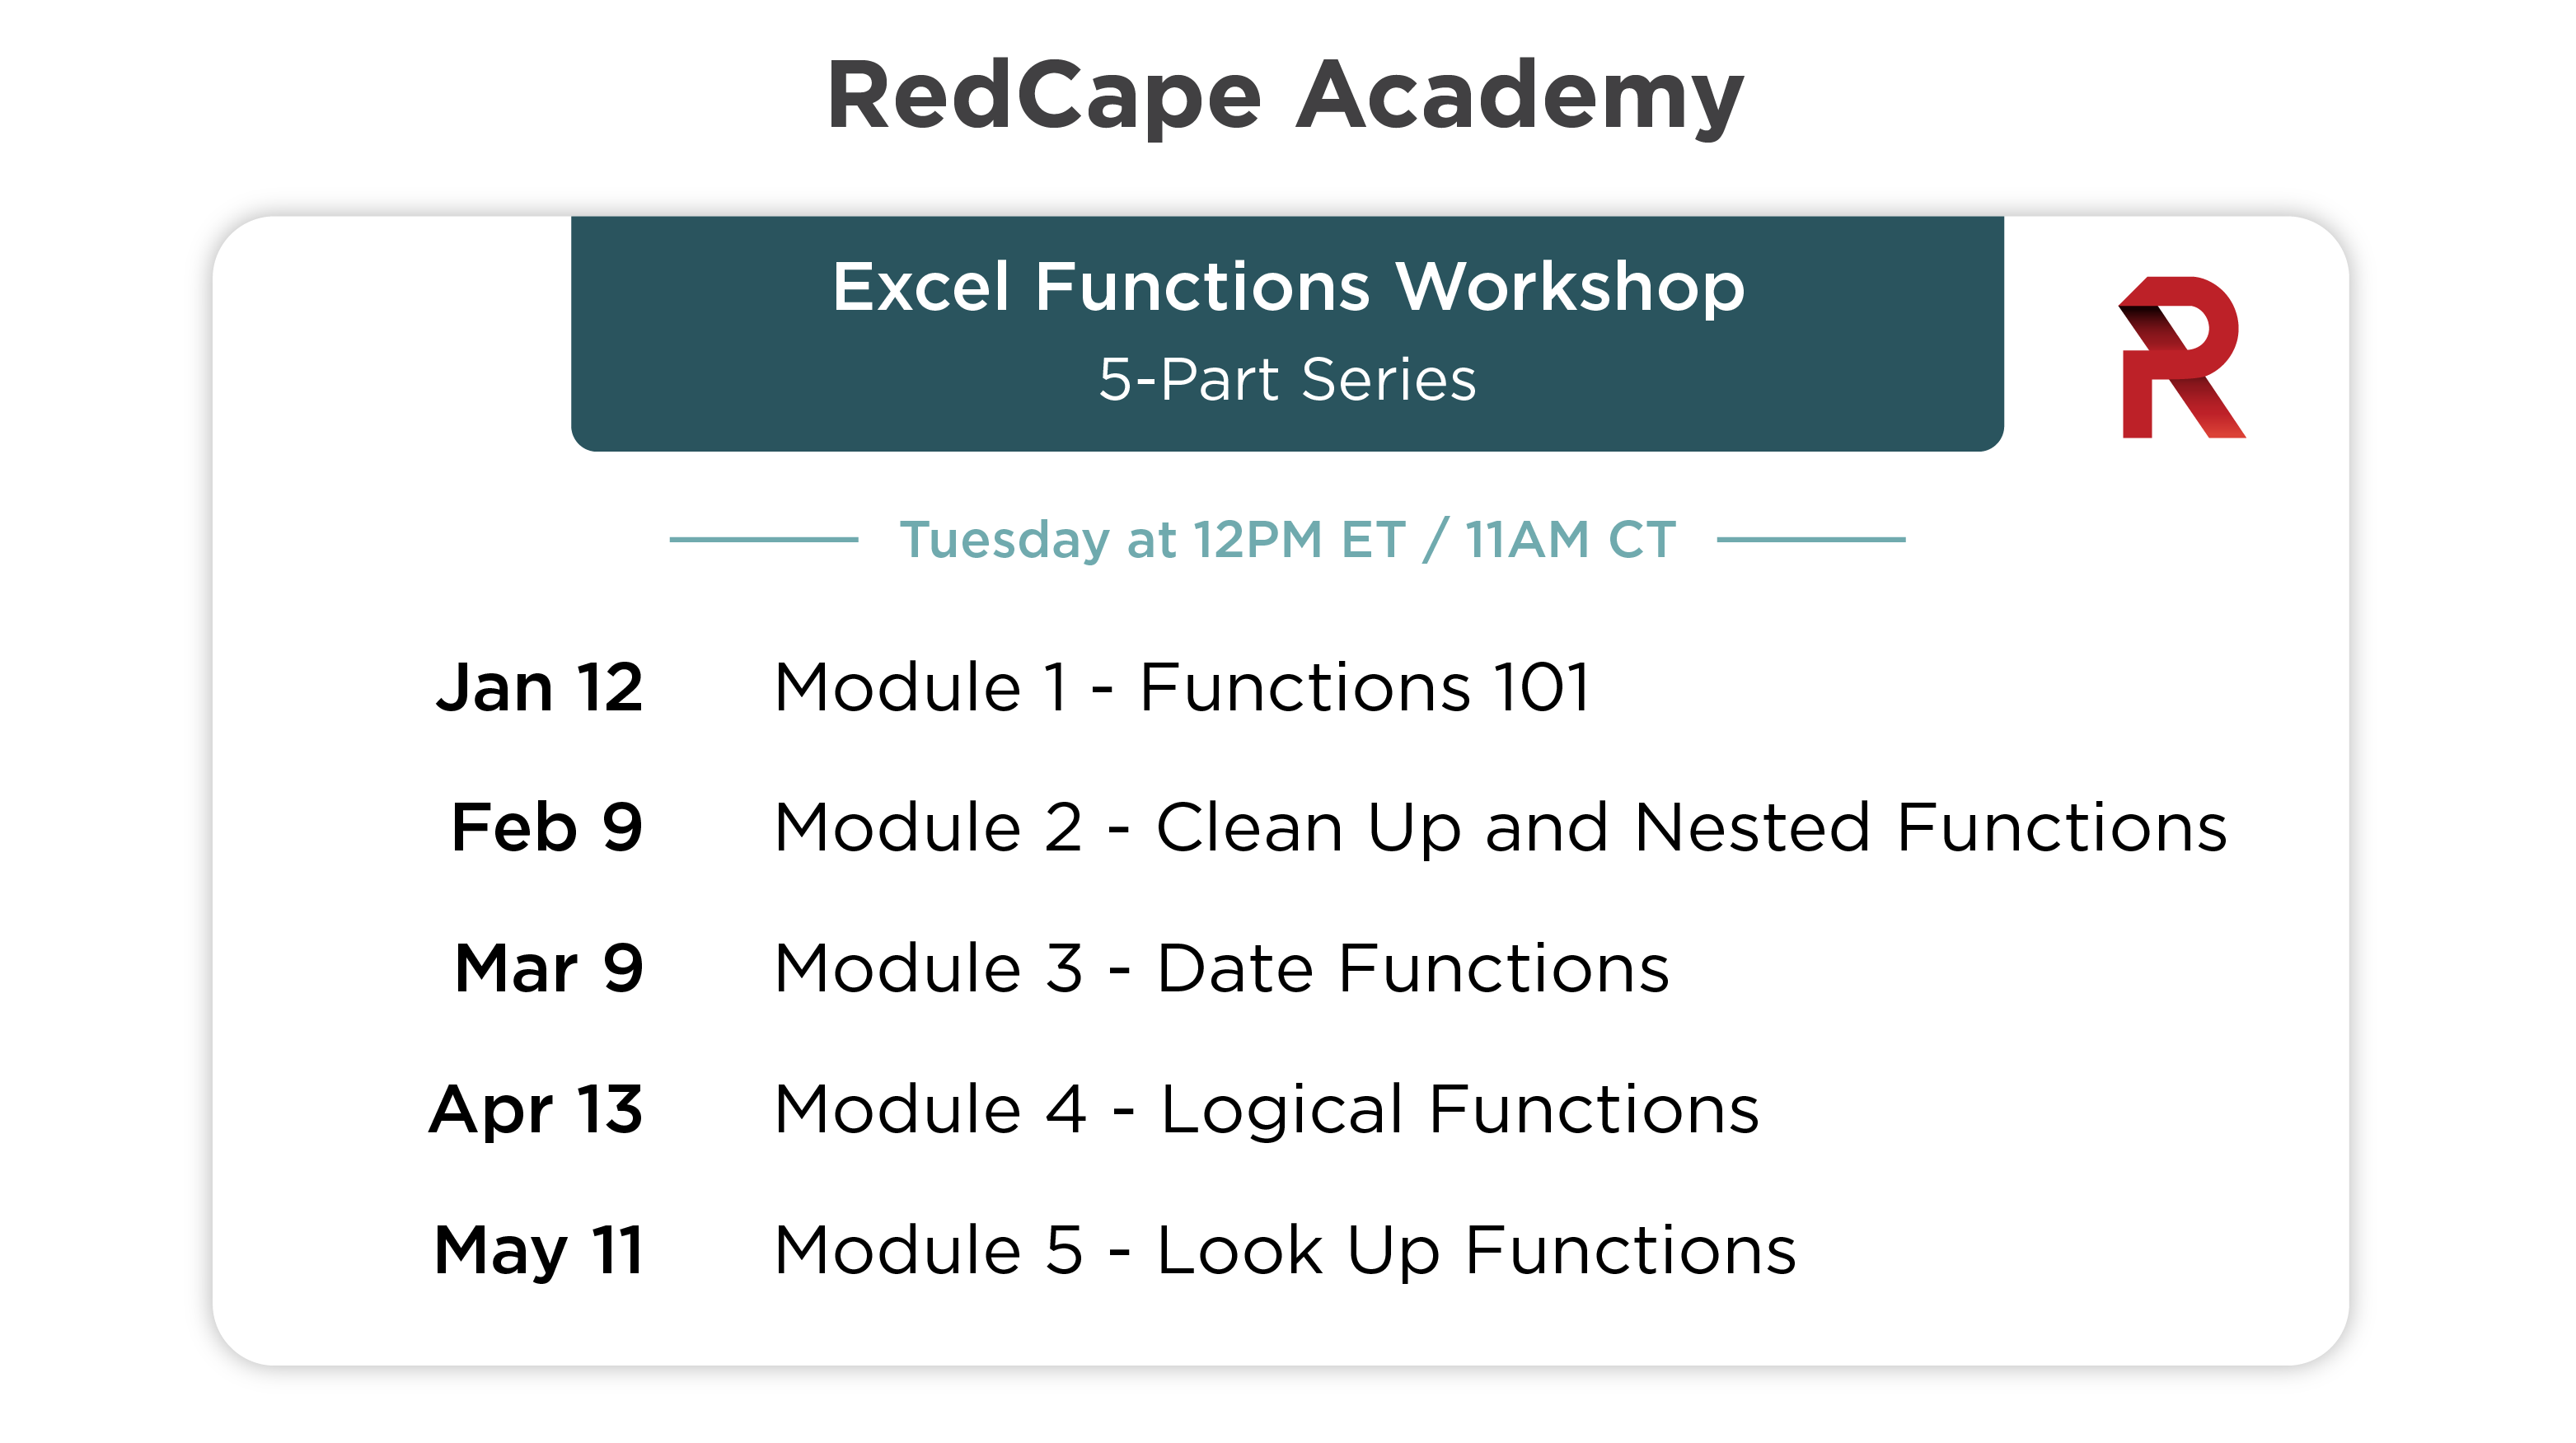 Excel Functions Workshop schedule for 2021 through May.